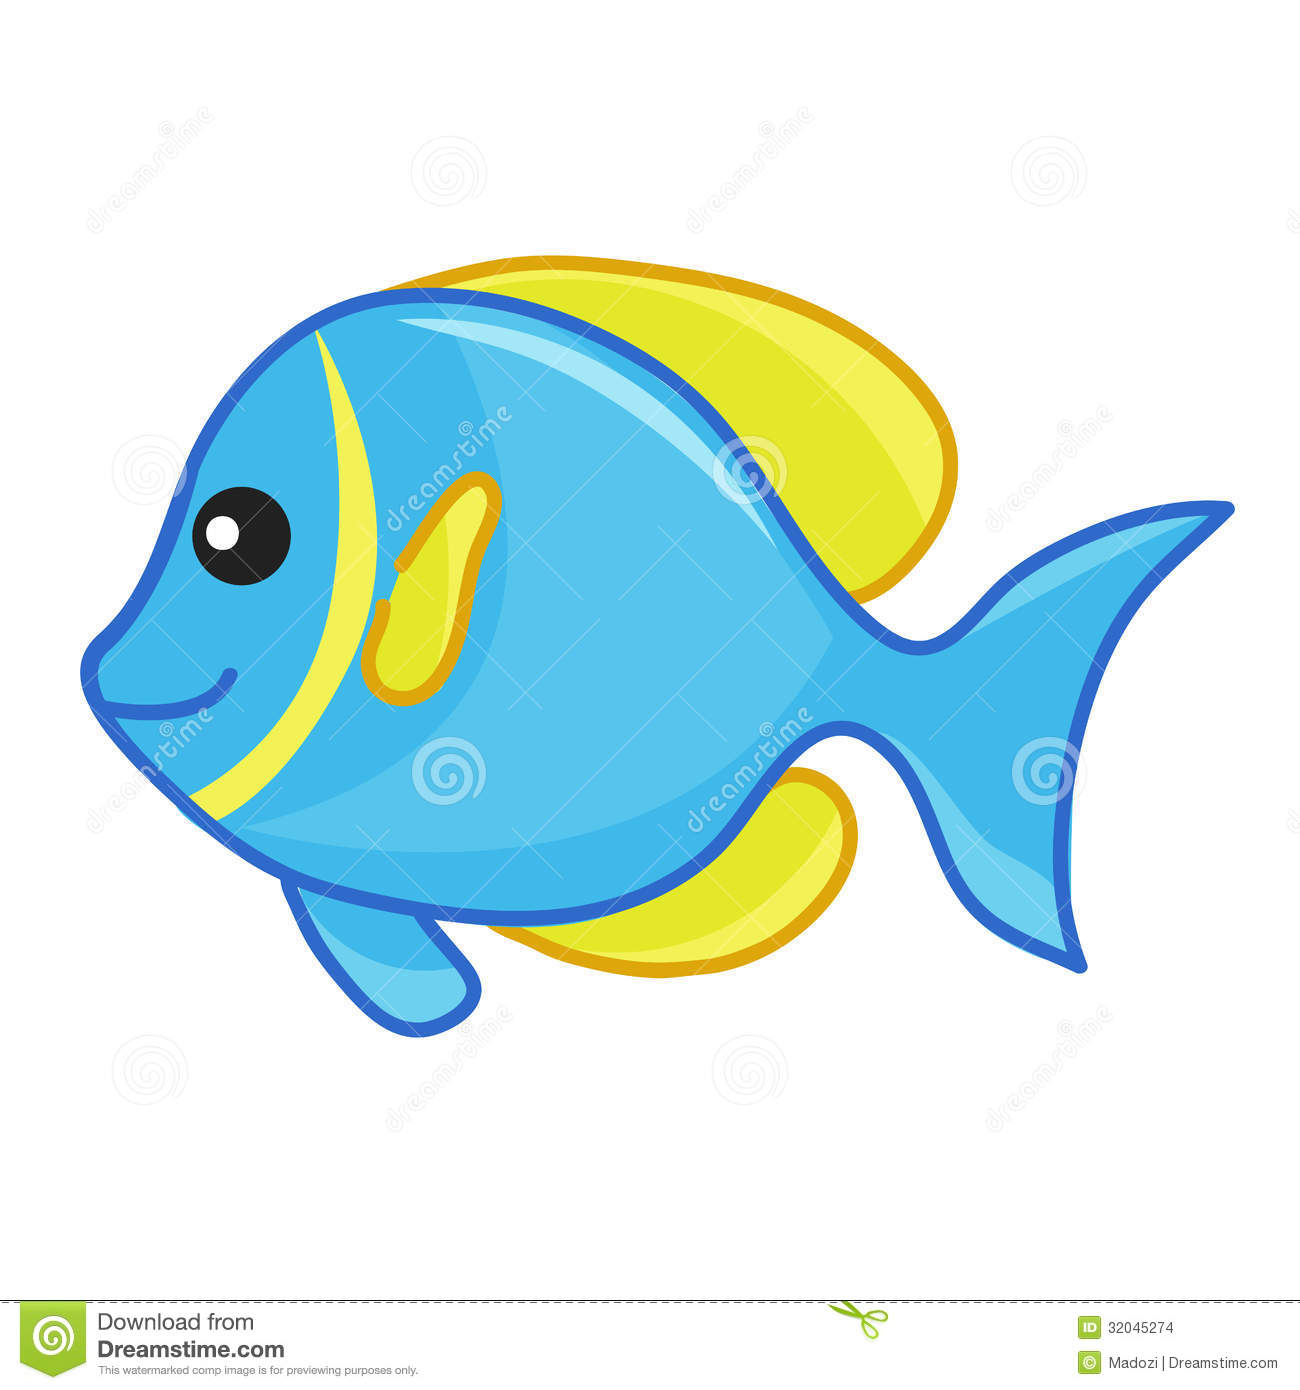 Clipart Cute Fish Blue And Yellow Cute F-Clipart Cute Fish Blue And Yellow Cute Fish-3